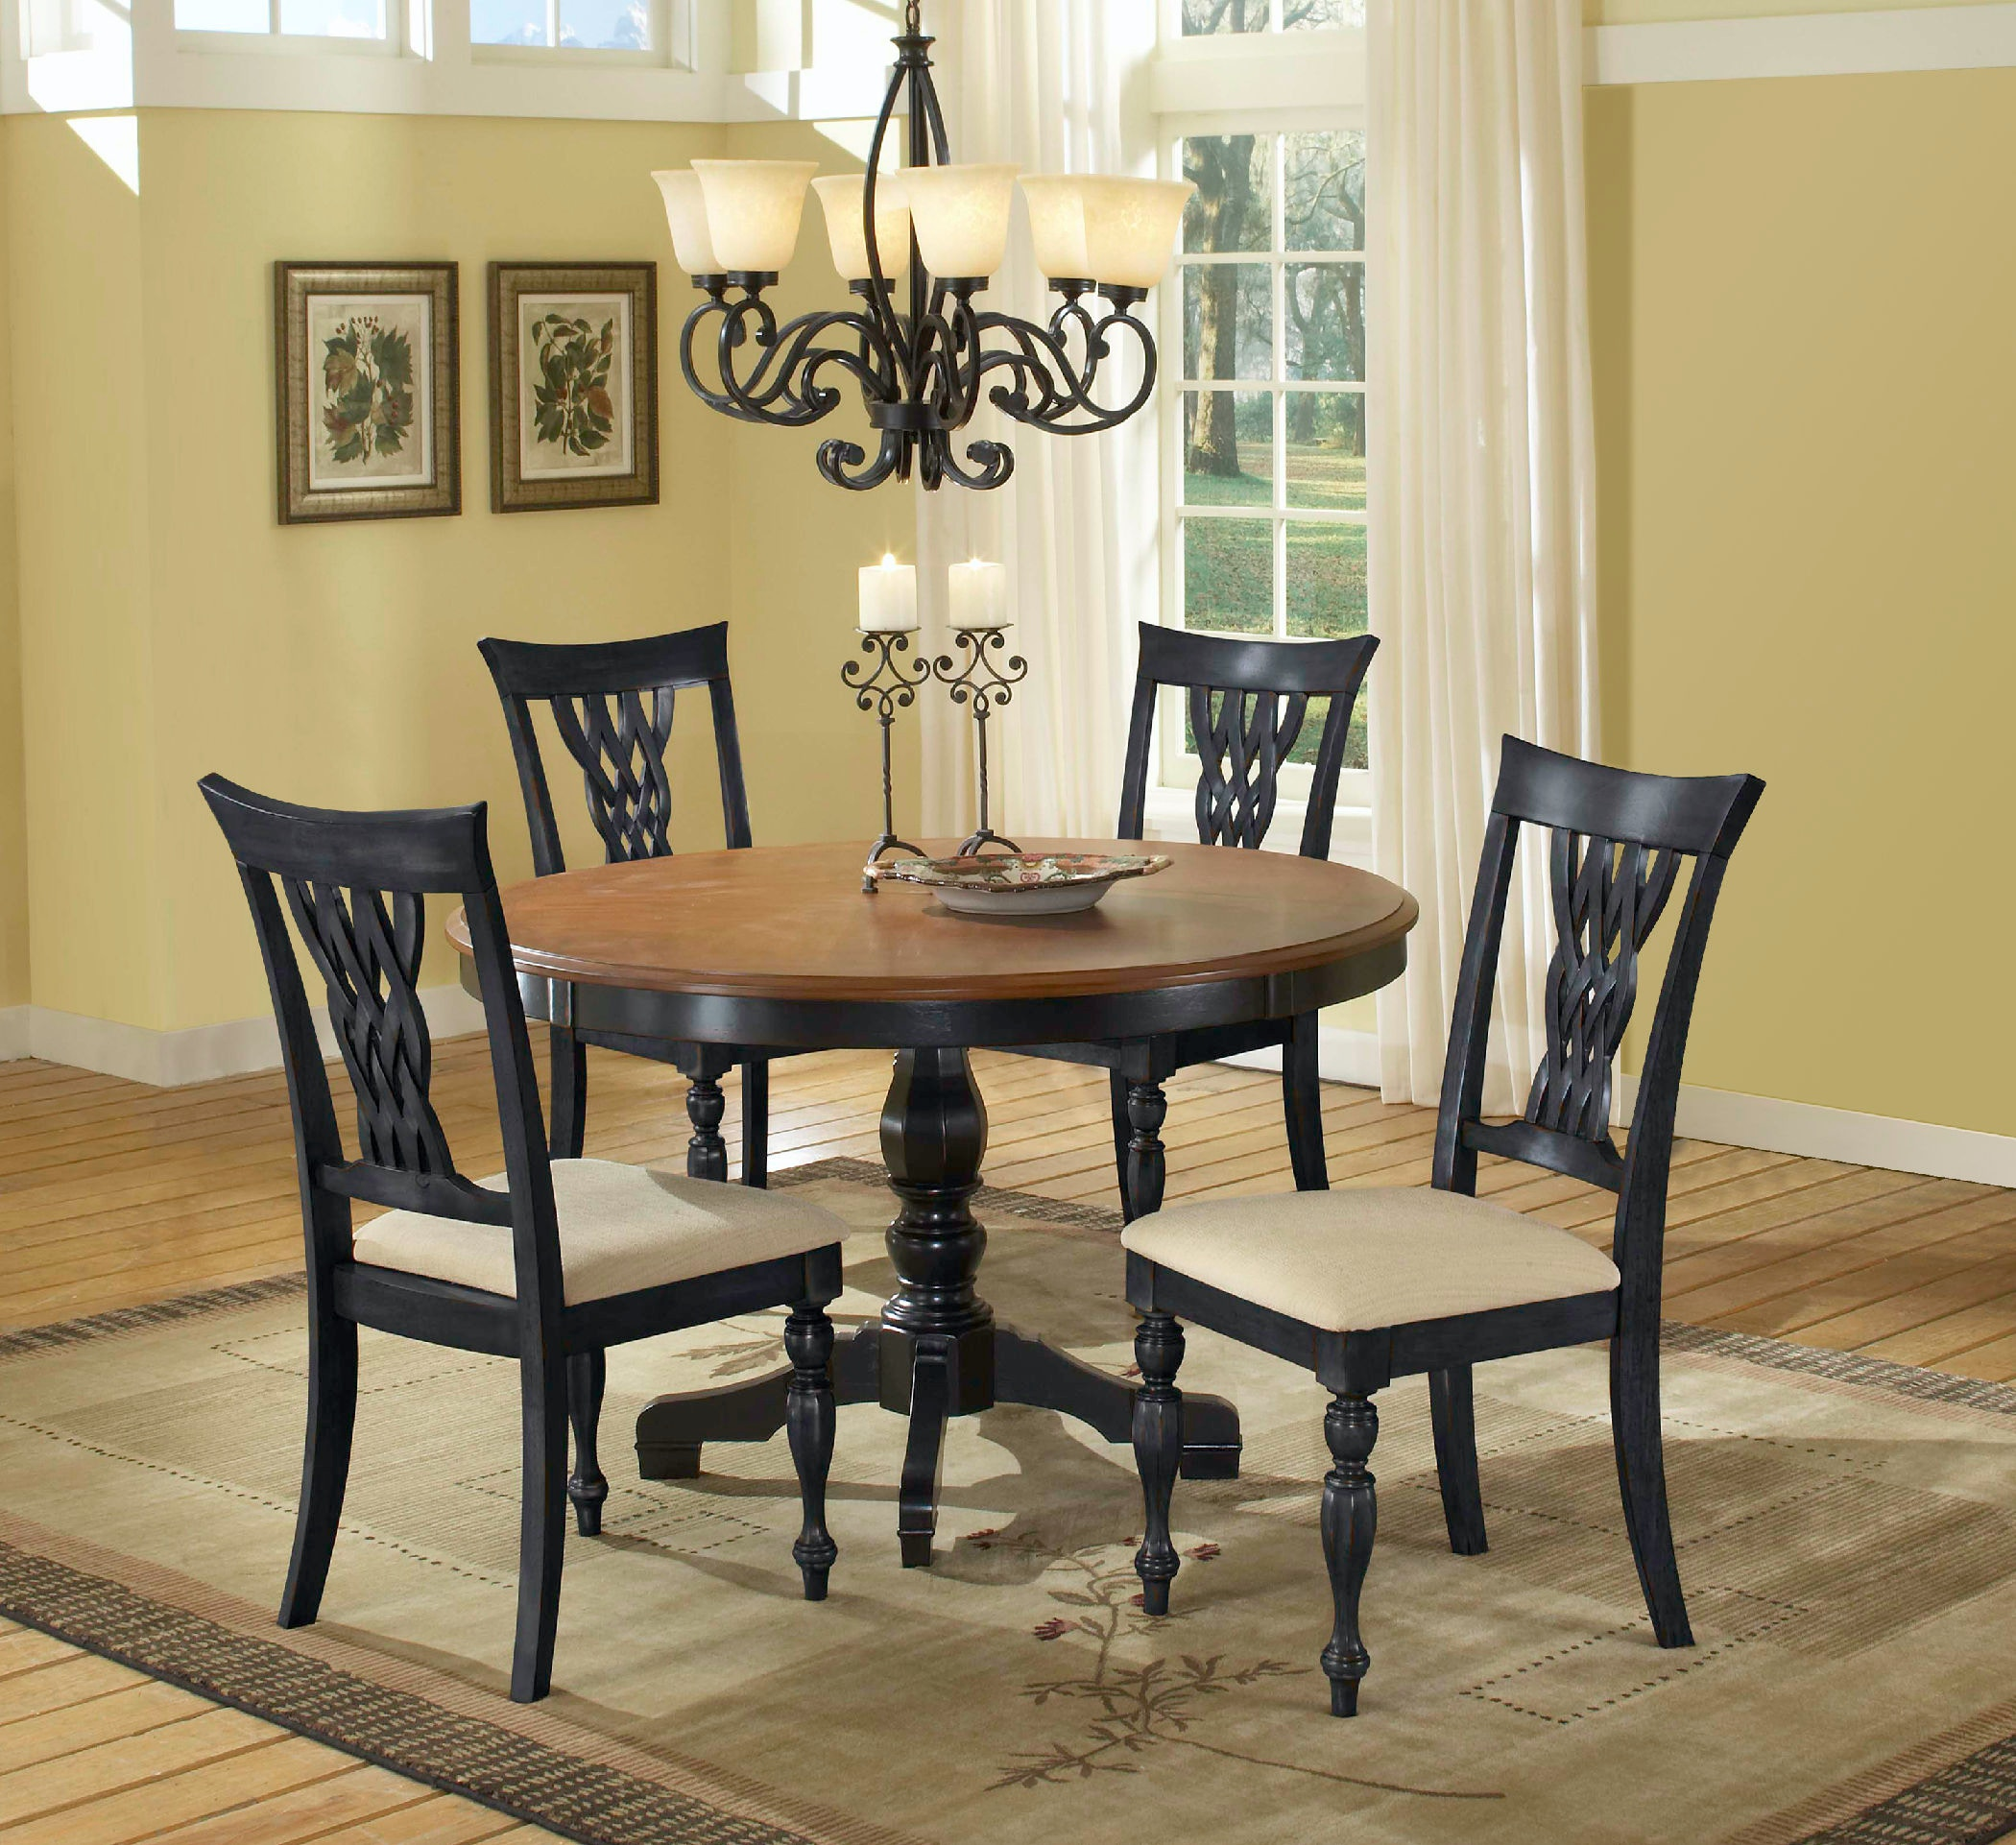 Hillsdale Furniture Dining Room Embassy Round Pedestal Dining Table   Base  4808 813 At Carol House Furniture